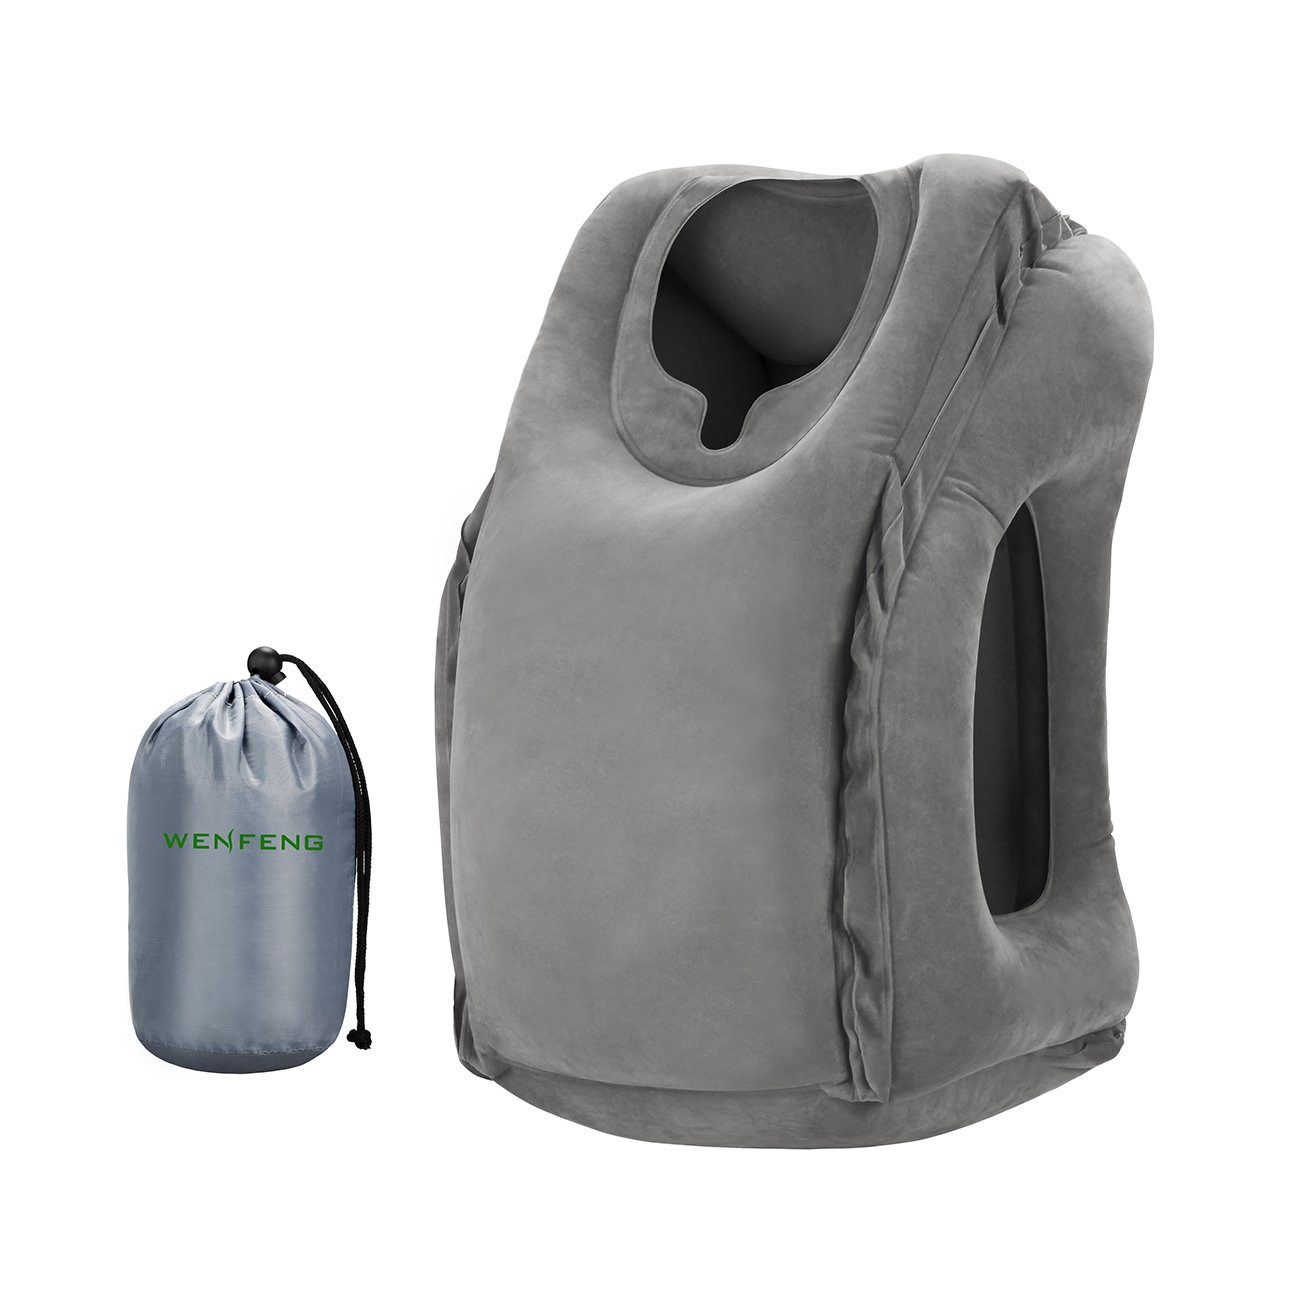 Wenfeng Inflatable Travel Pillow, Portable Ergonomic Head Neck Rest Pillow  For Travel, Camping,